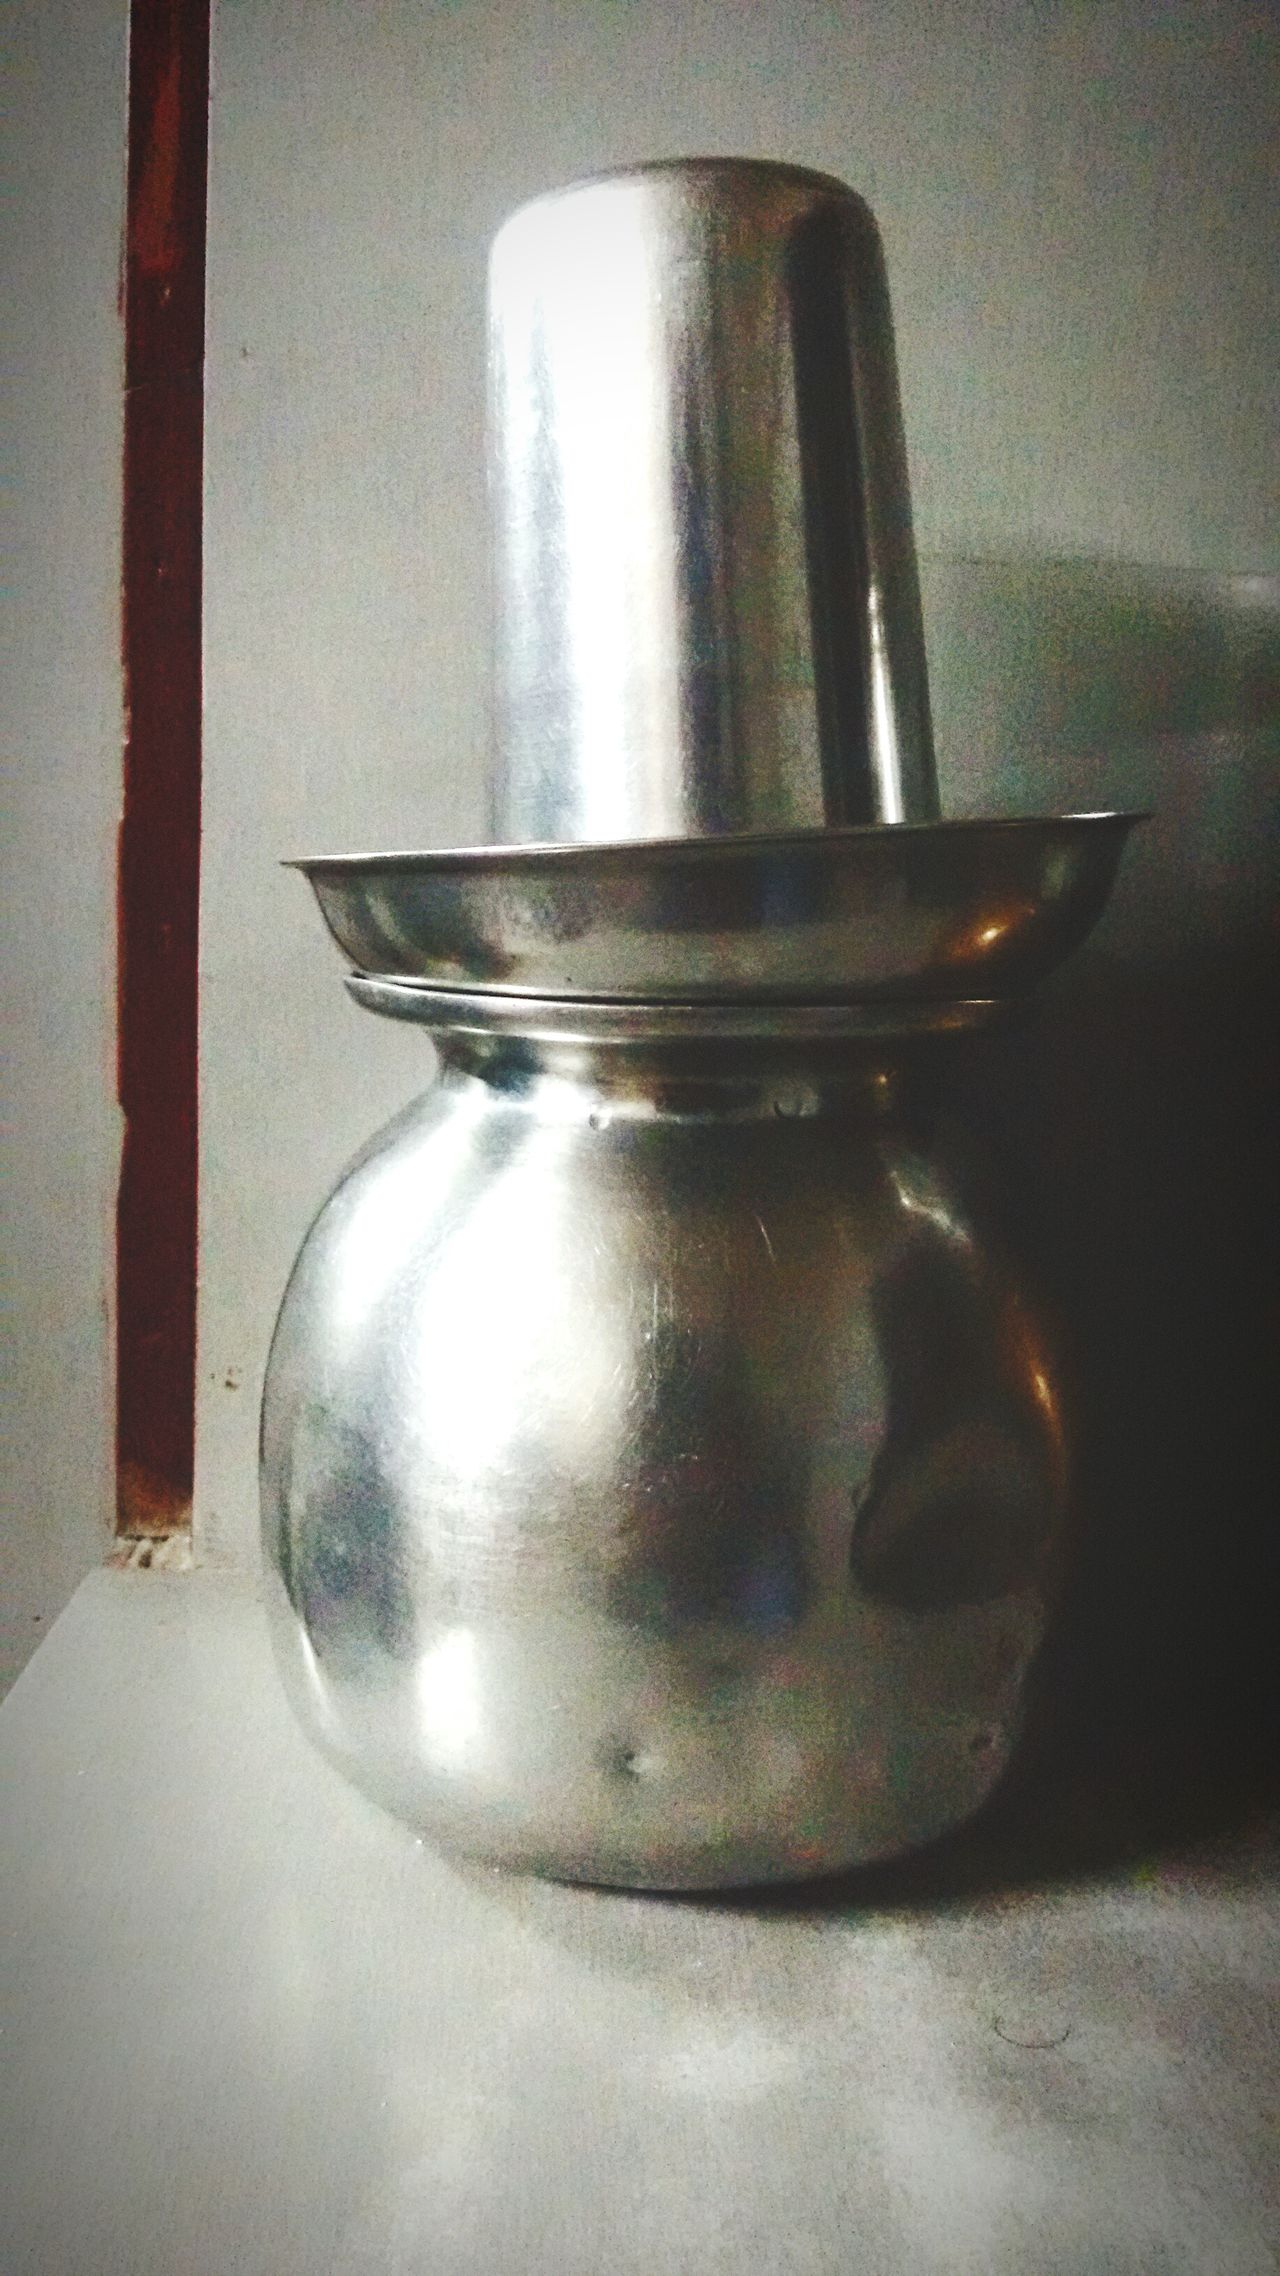 Indian utensil...water pot... Indian Culture  Indian Utensils Still Life Fine Art Photography EyeEm Gallery Randomshot Motog2click Light And Shadow Fresh On Eyeem  Glass Indian Style Popular Still Life Photography Showcase July Home Is Where The Art Is Eyeemphoto TakeoverContrast